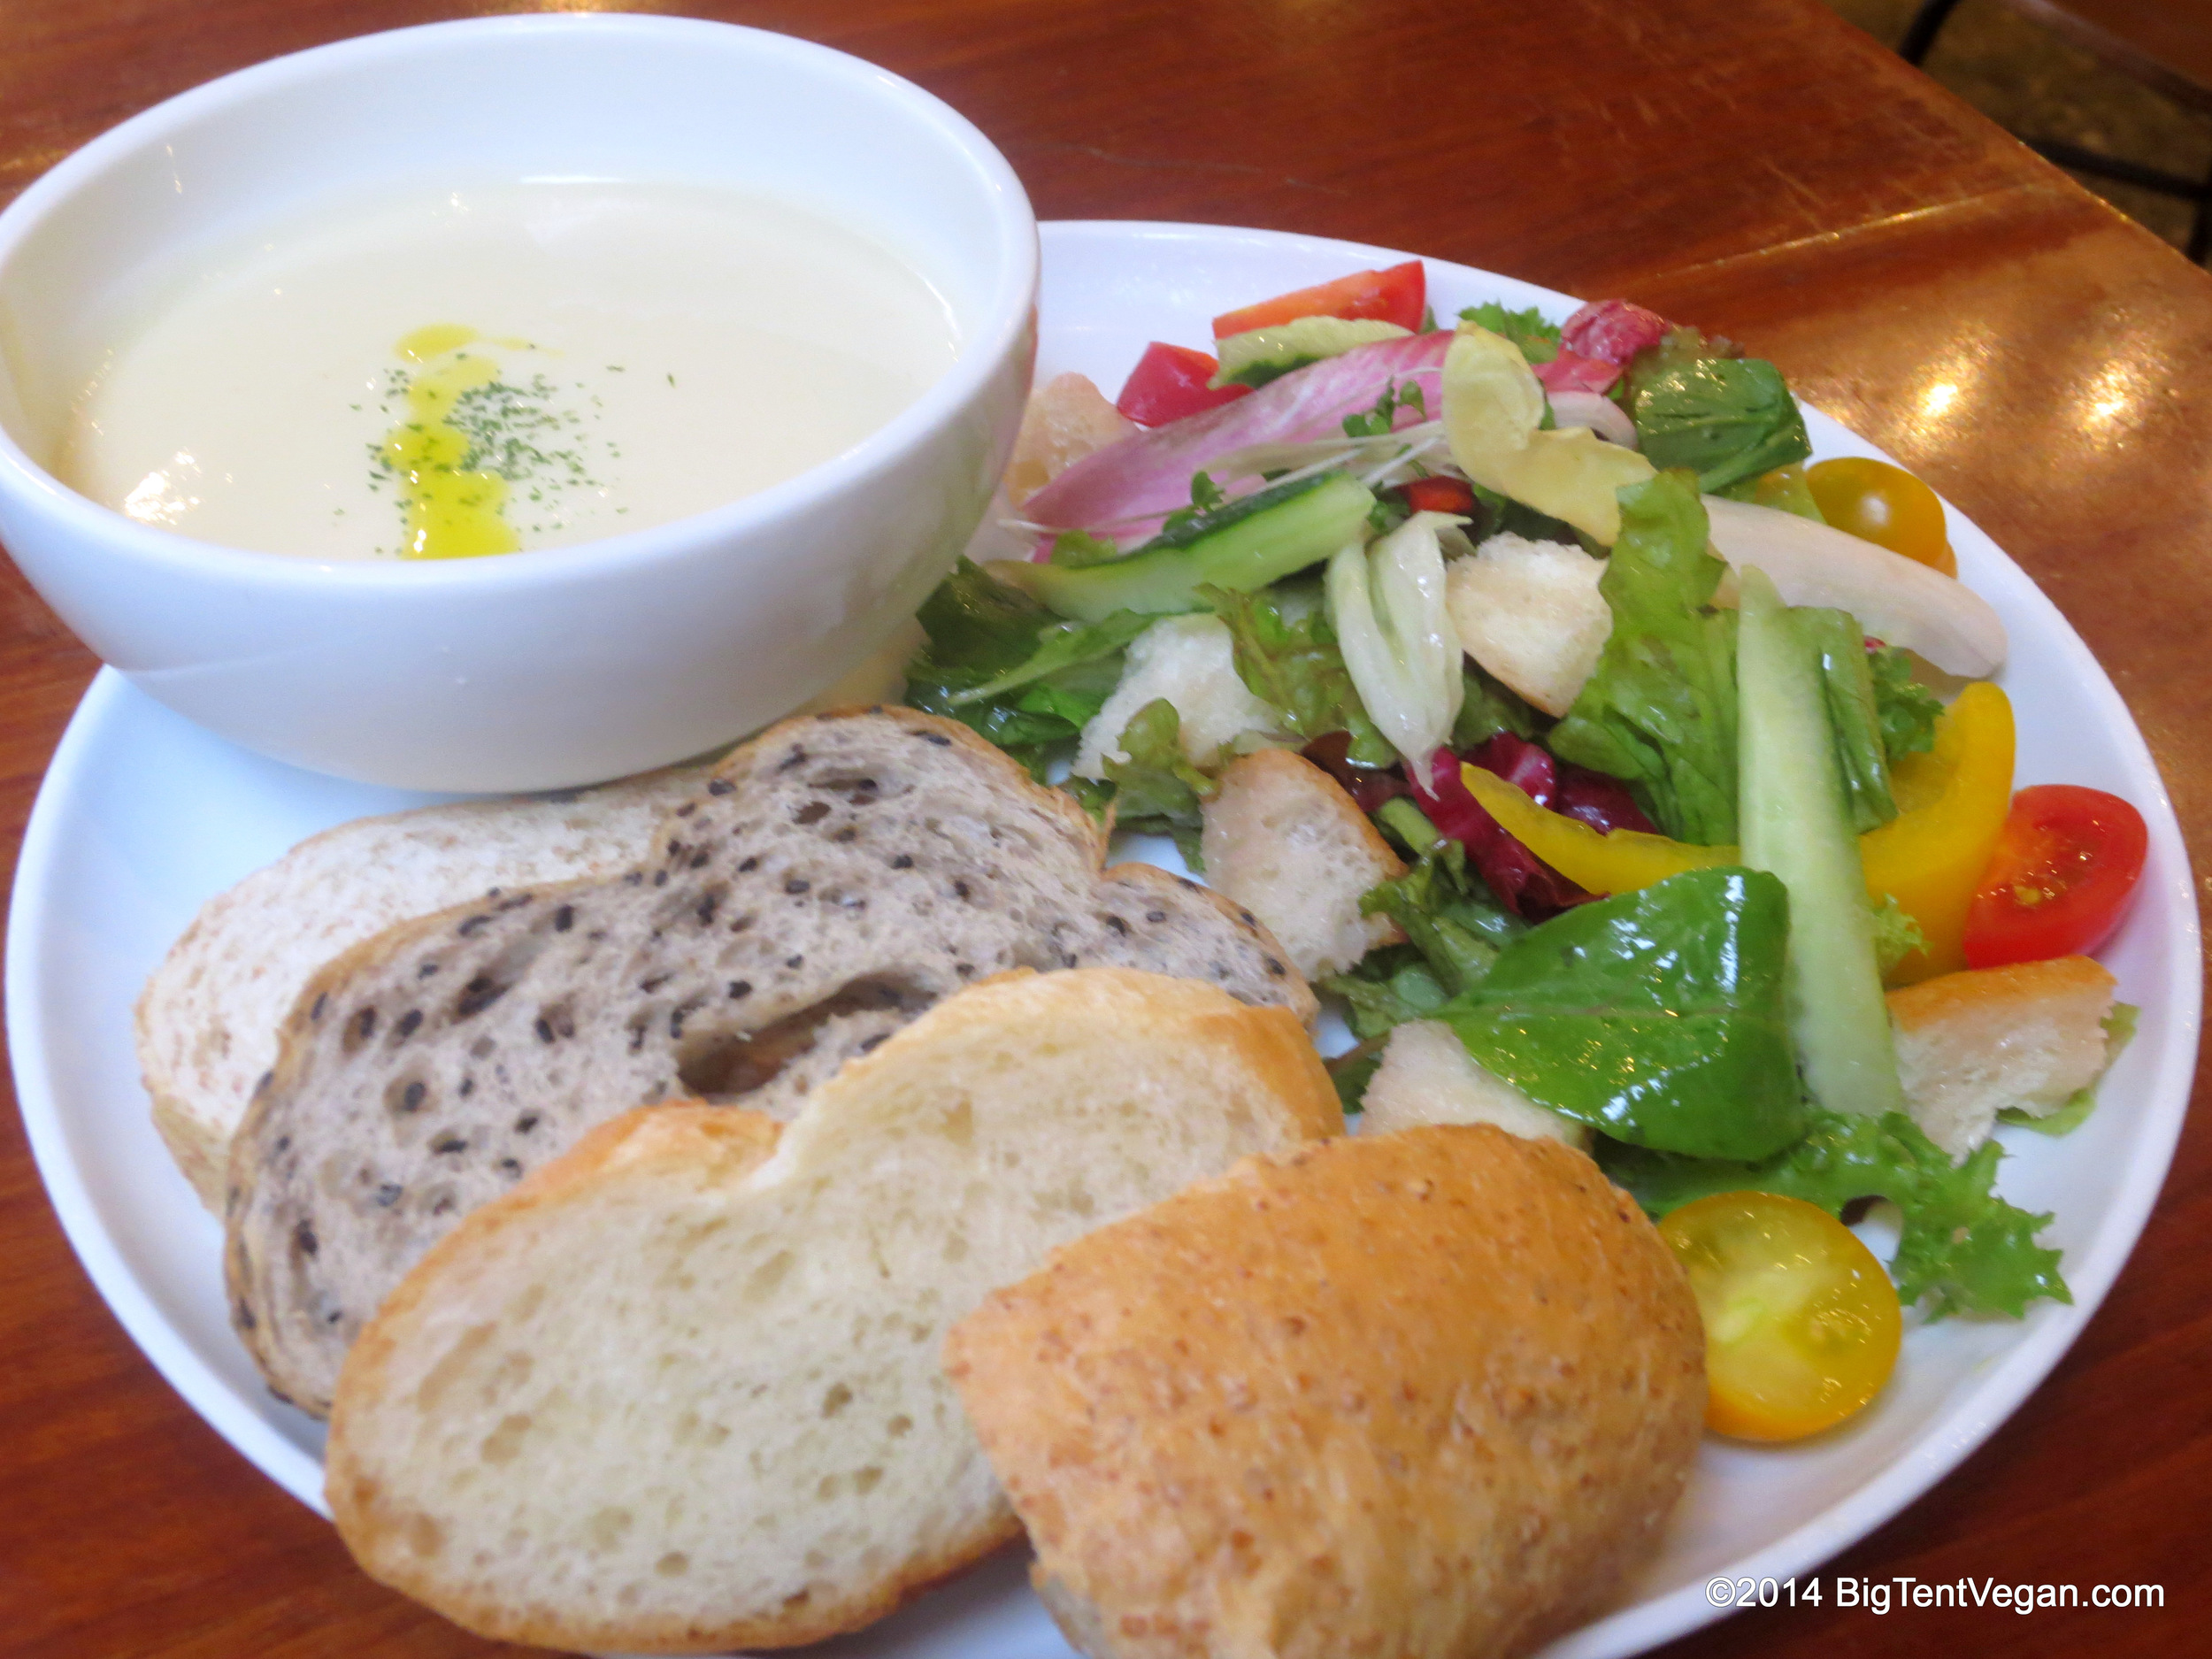 Chilled Potato Leek Soup with Panzanella Salad and Assorted Artisan Bread at Eat More Greens in Tokyo, Japan (100% vegetarian restaurant, very vegan-friendly)